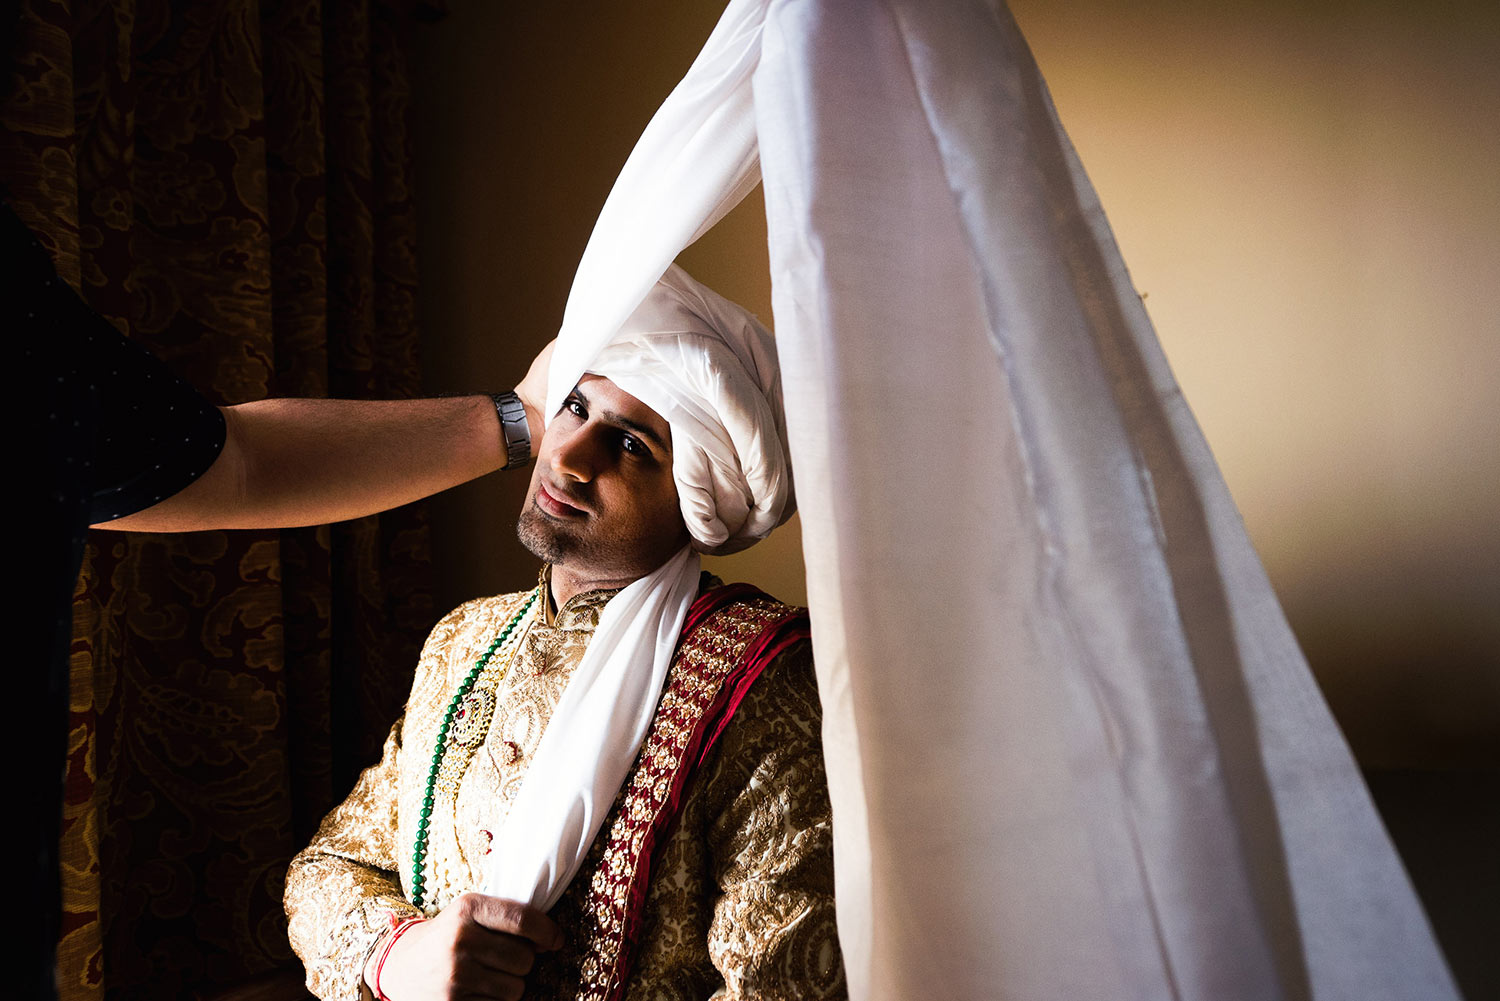 Langham Pasadena Indian Groom getting his turban on